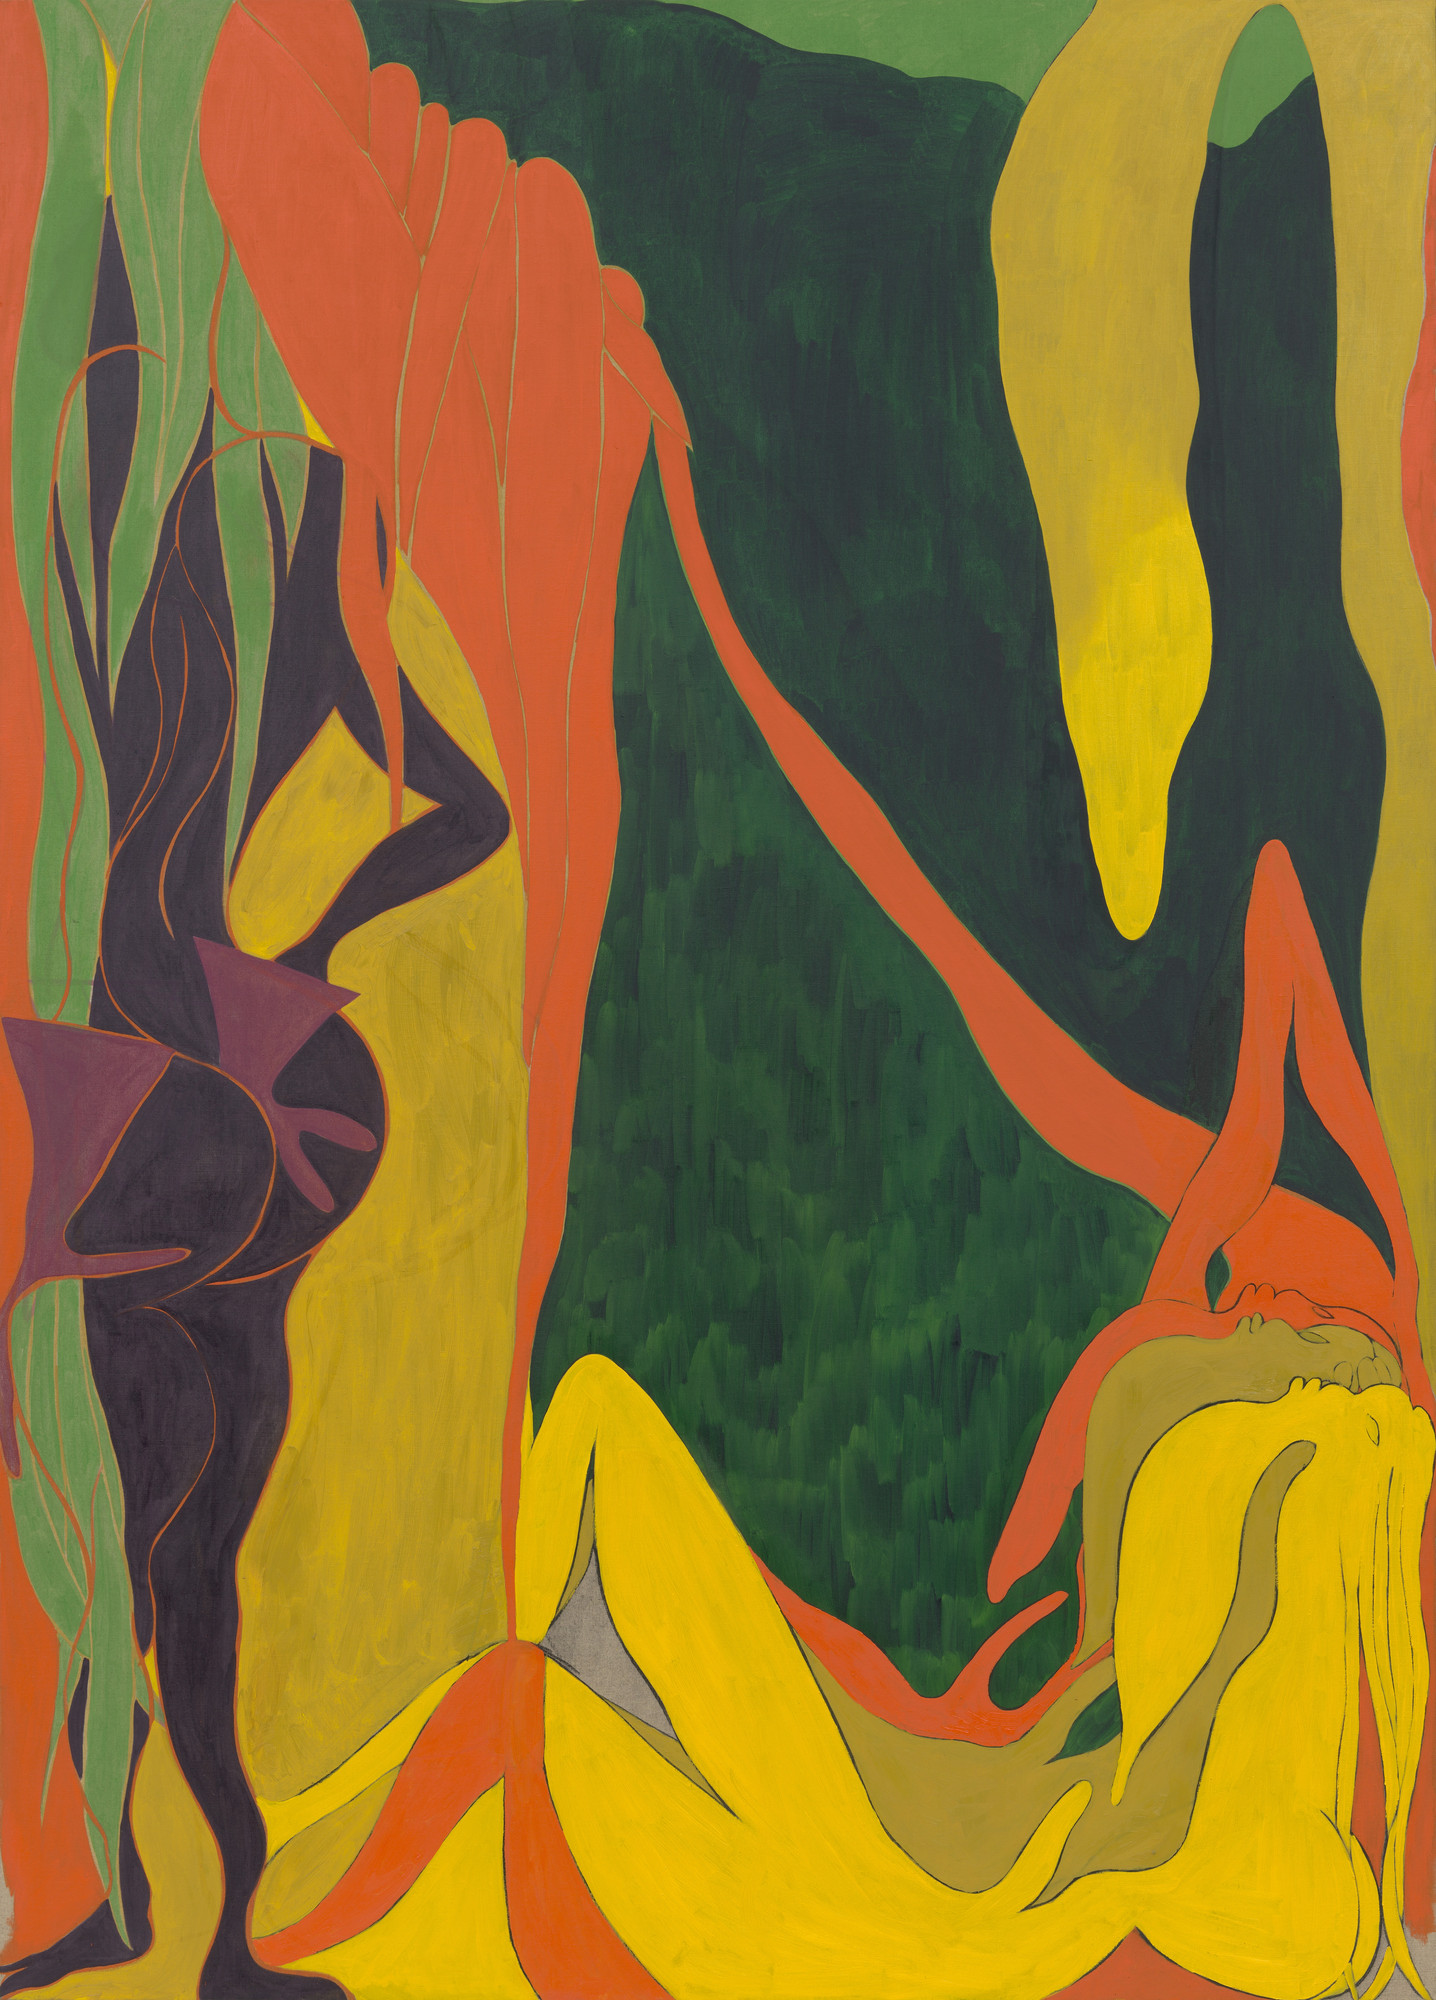 Chris Ofili. The Raising of Lazarus. 2007